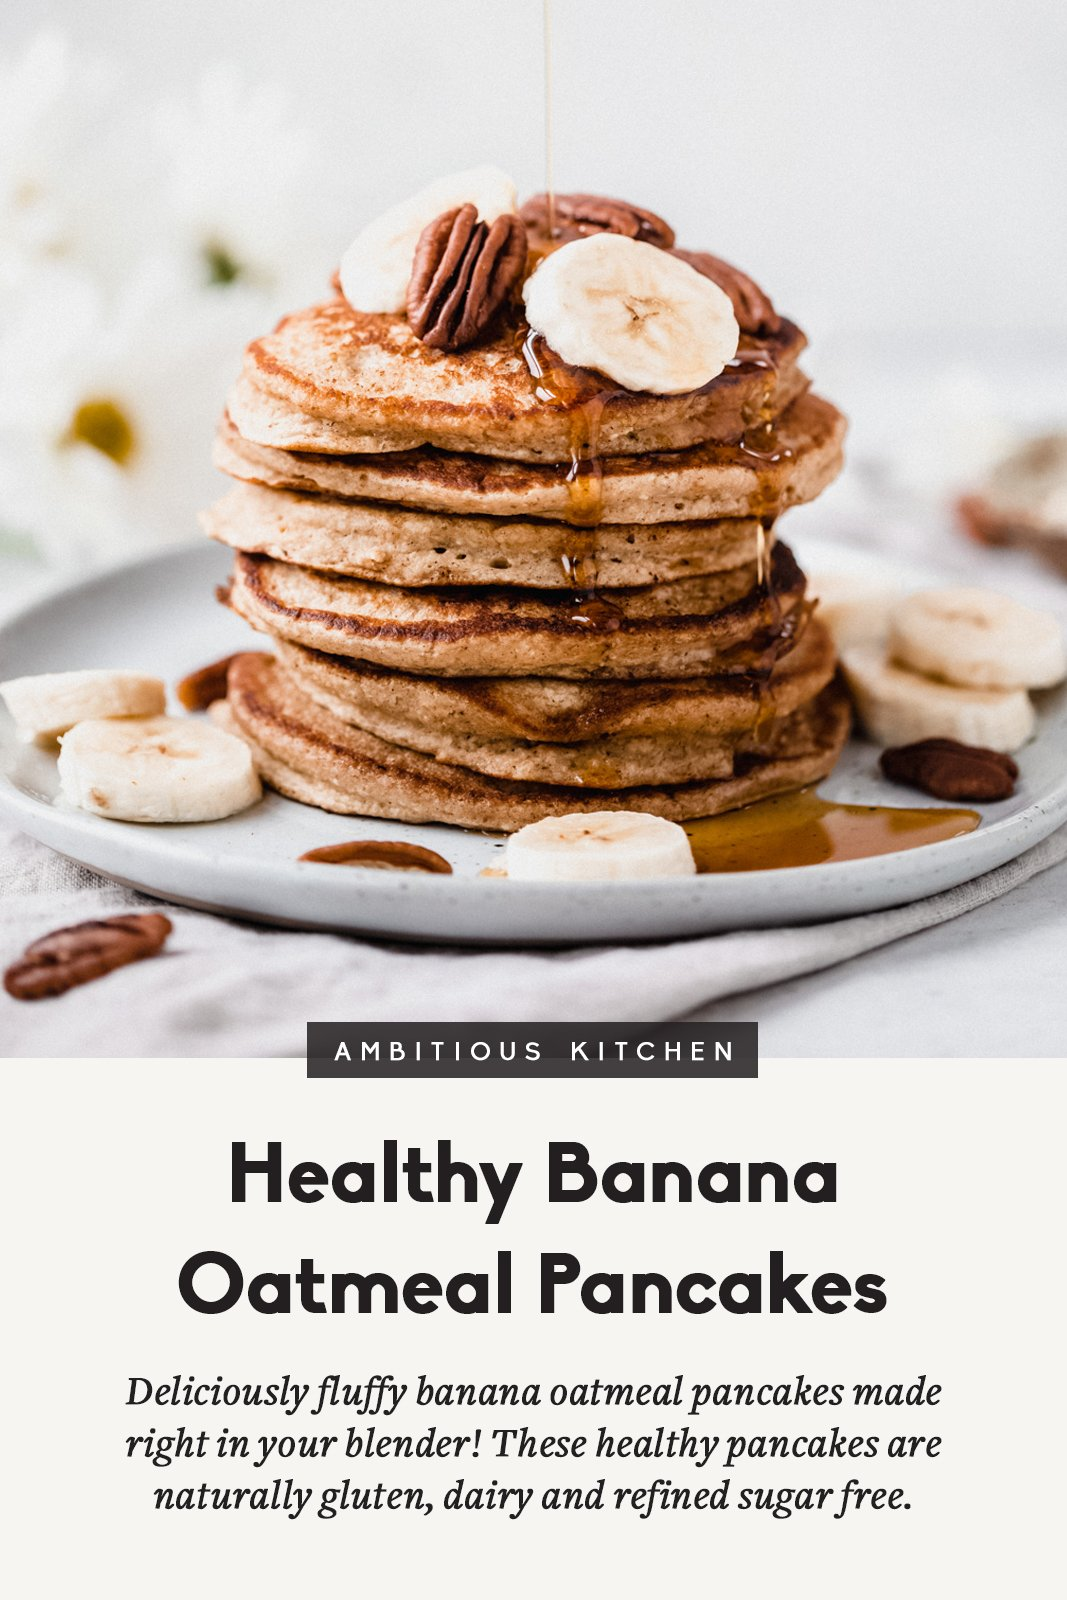 banana oatmeal pancakes in a stack on a plate with text underneath